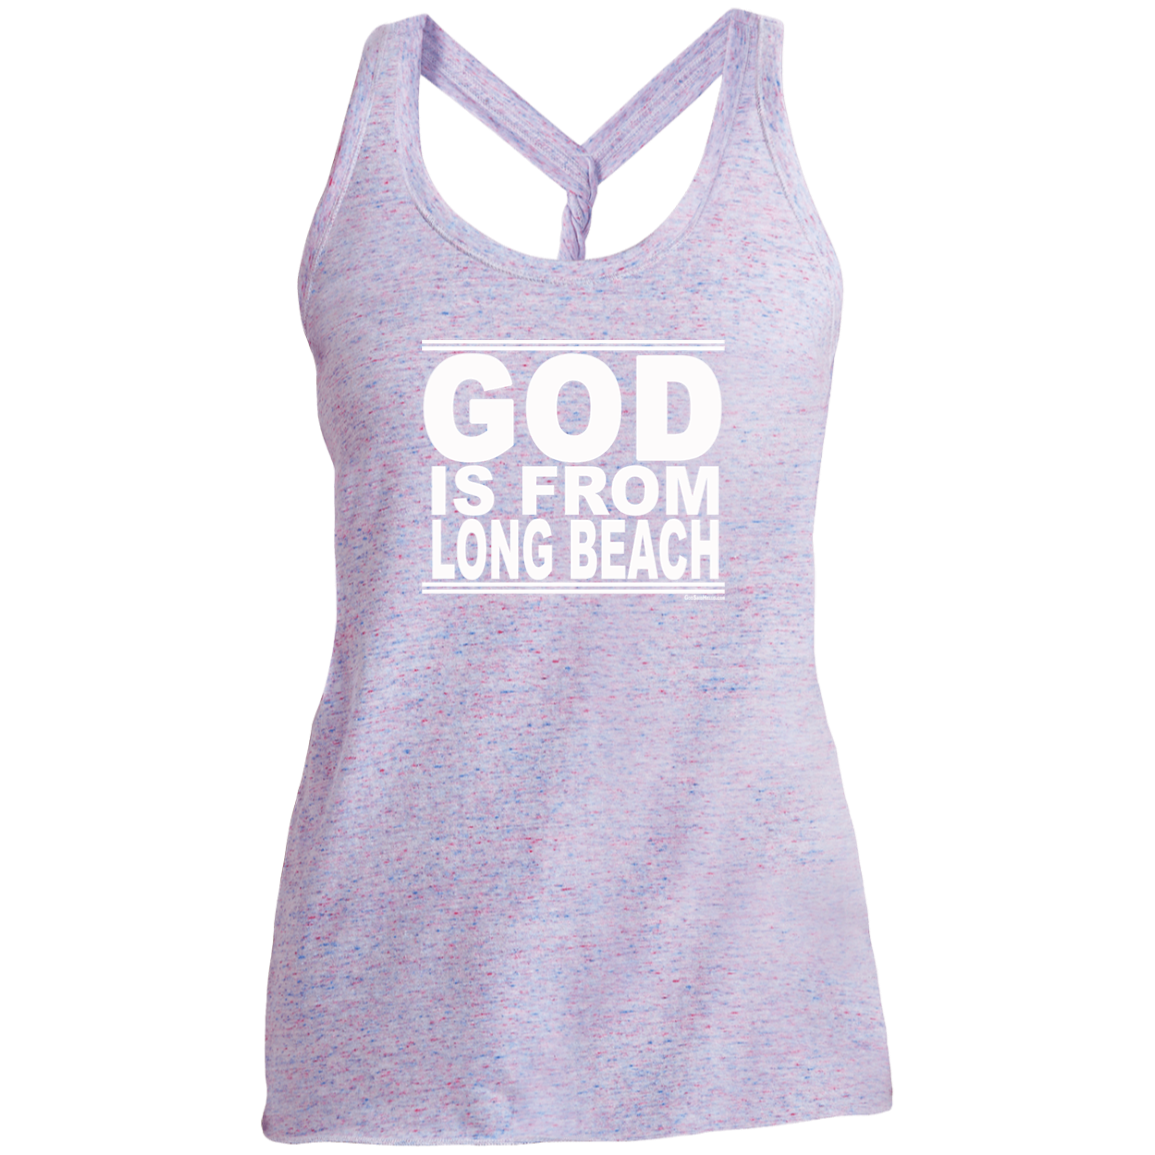 #GodIsFromLongBeach - Women's Twist Back Tank Top